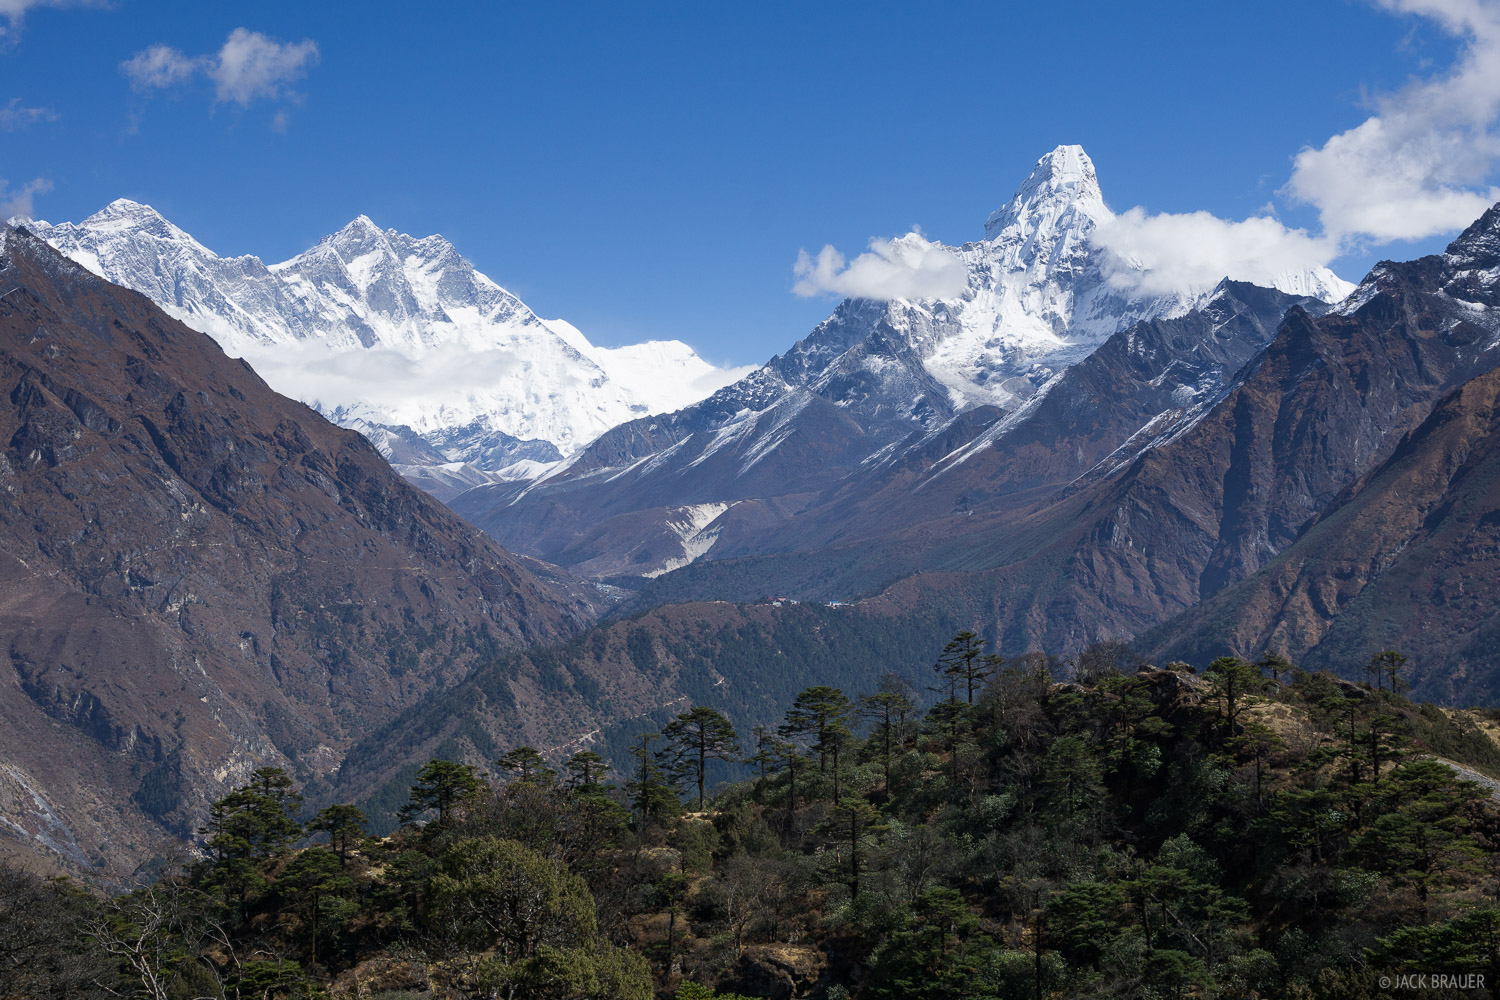 Ama Dablam,Asia,Himalaya,Khumbu,Nepal, Everest, photo